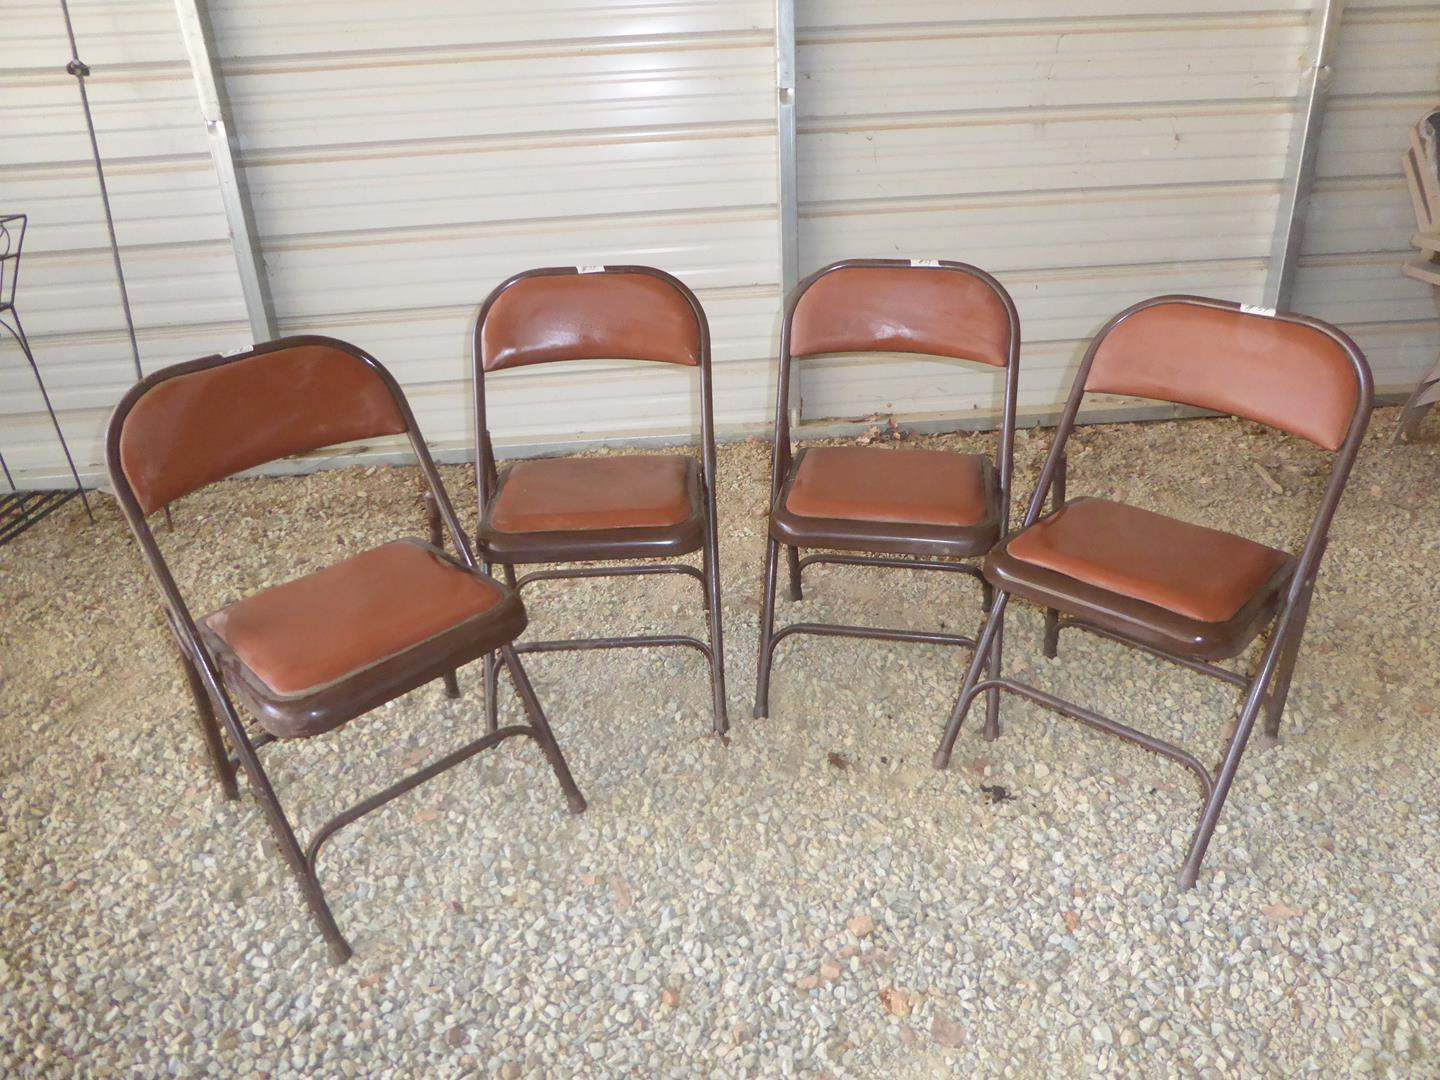 Lot # 59 - Four Vintage Metal Folding Chairs w/Built in Cushions (main image)